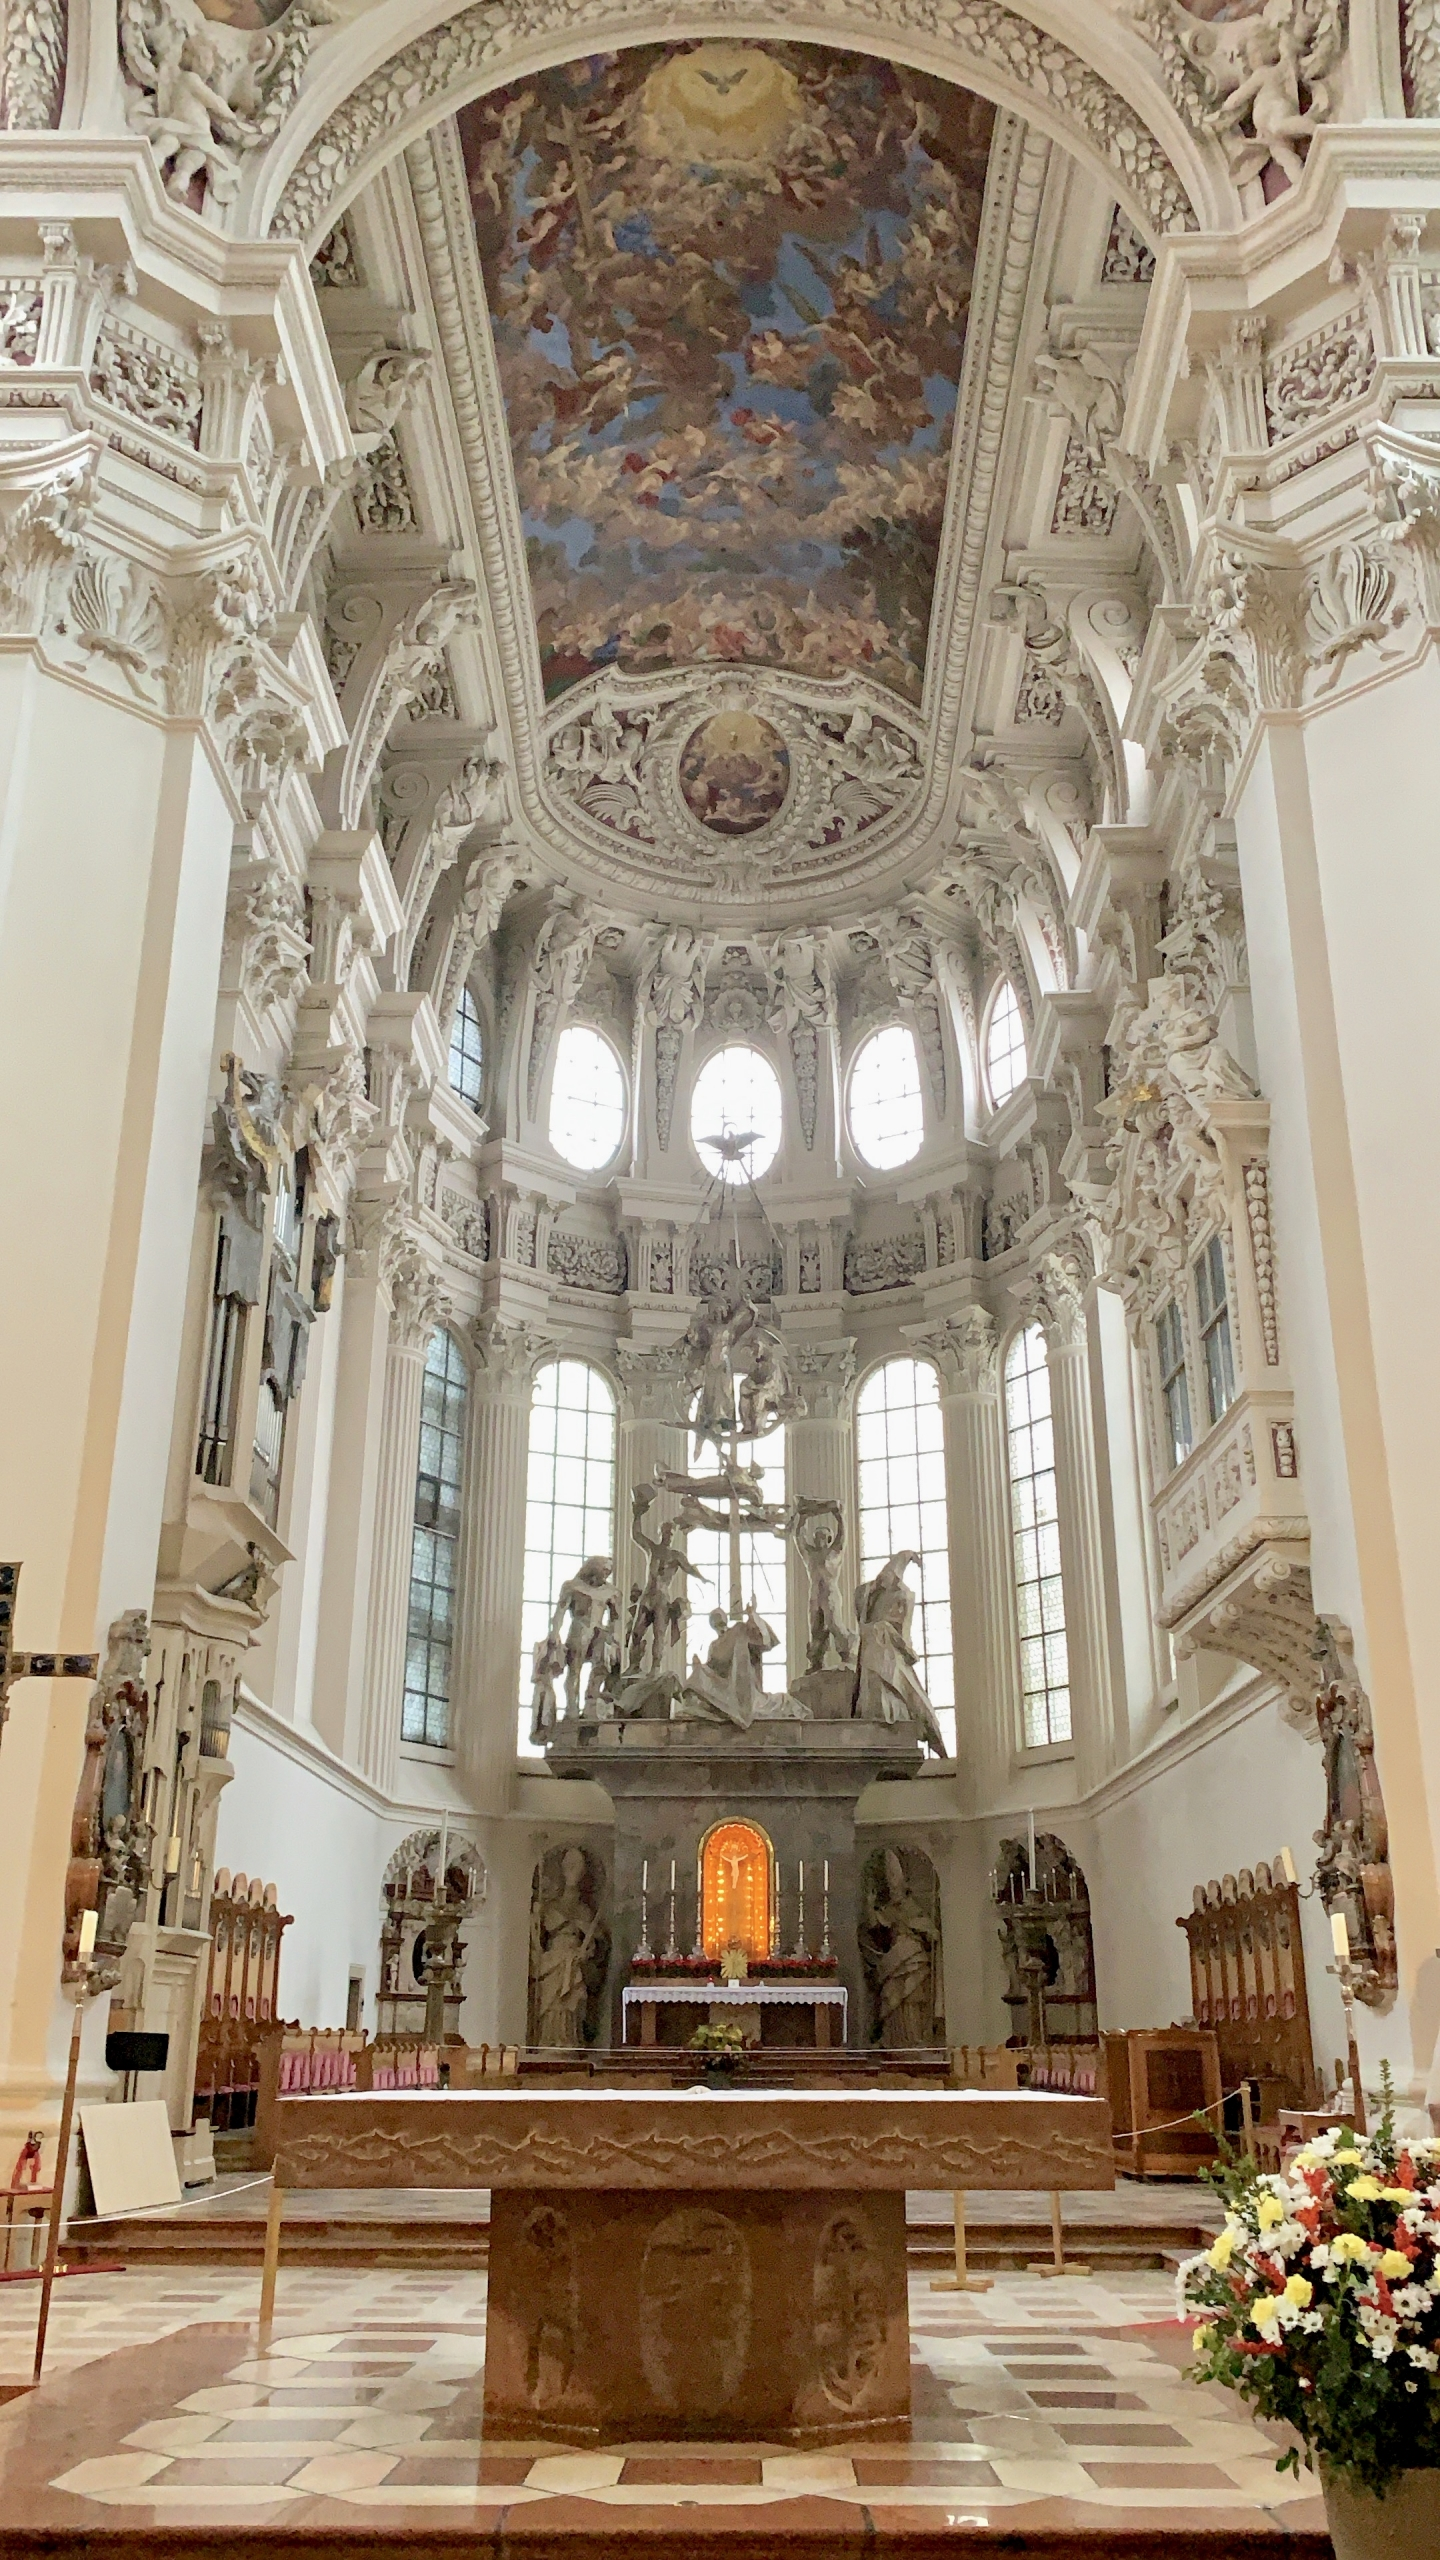 St Stephen's when visiting Passau